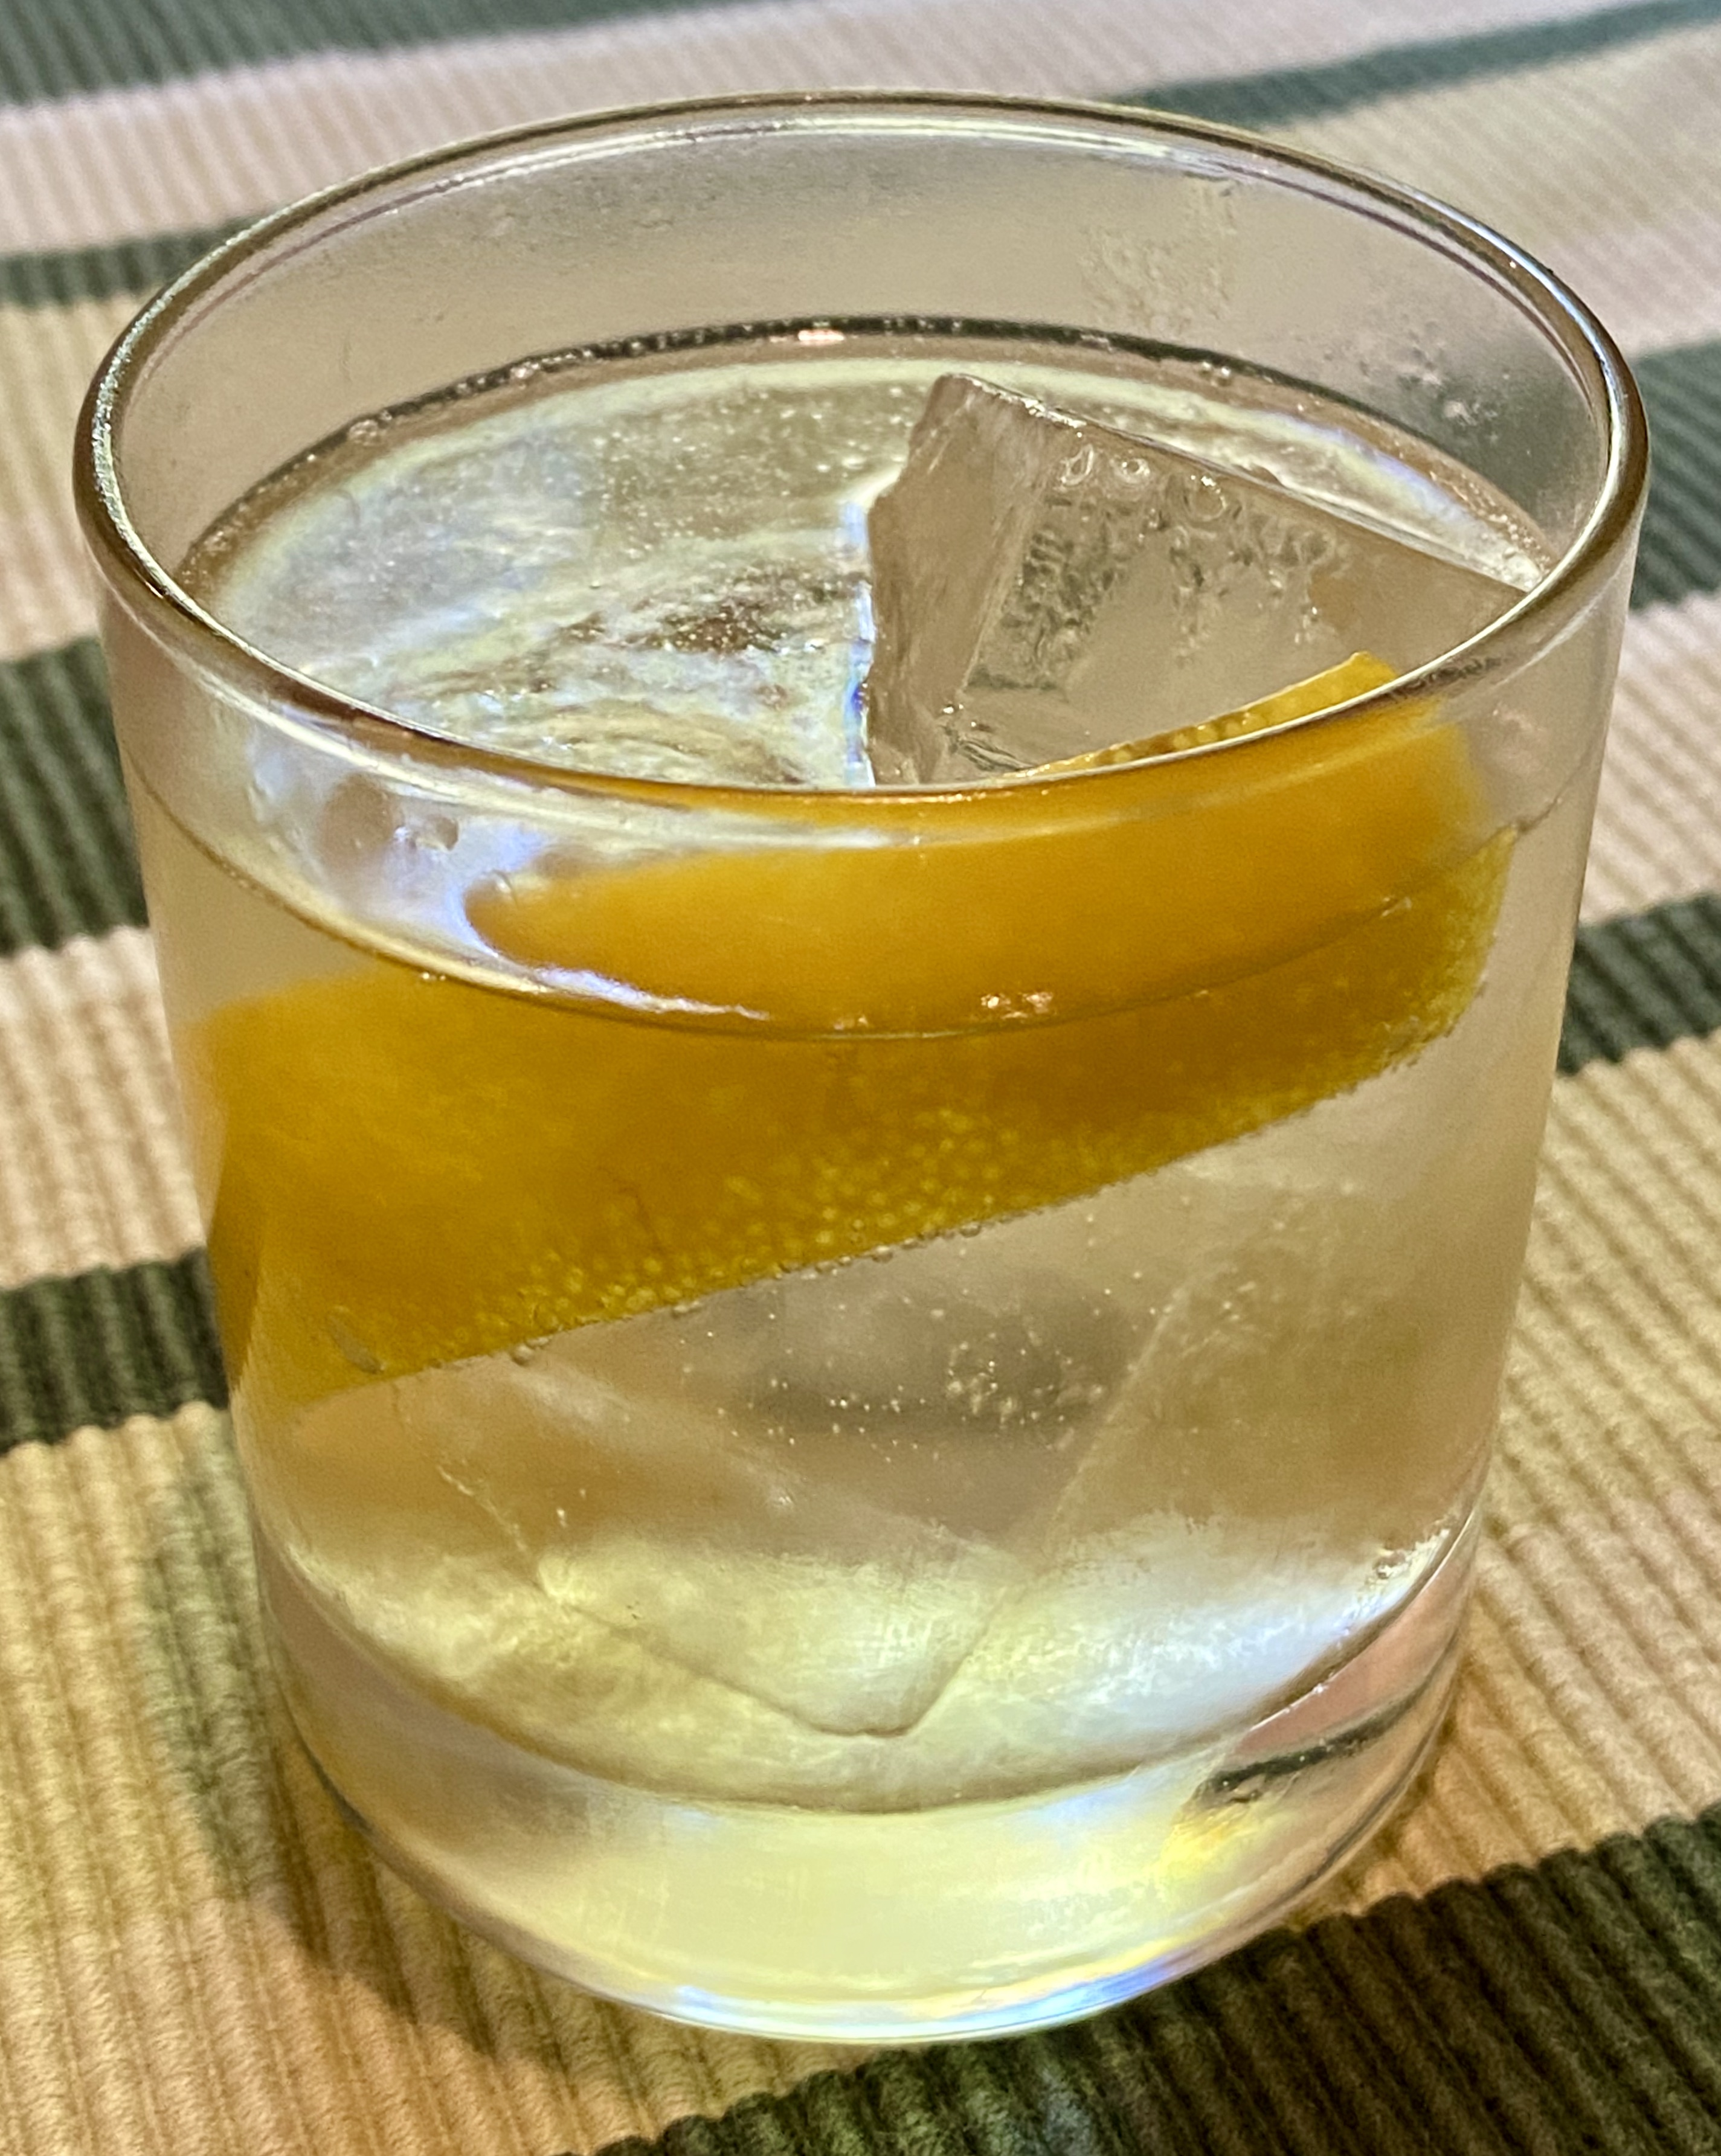 An example of the Mattei Blanc Spritz, the mixed drink (cocktail) featuring Mattei Cap Corse Blanc Quinquina, and soda water or tonic water; photo by Martin Doudoroff